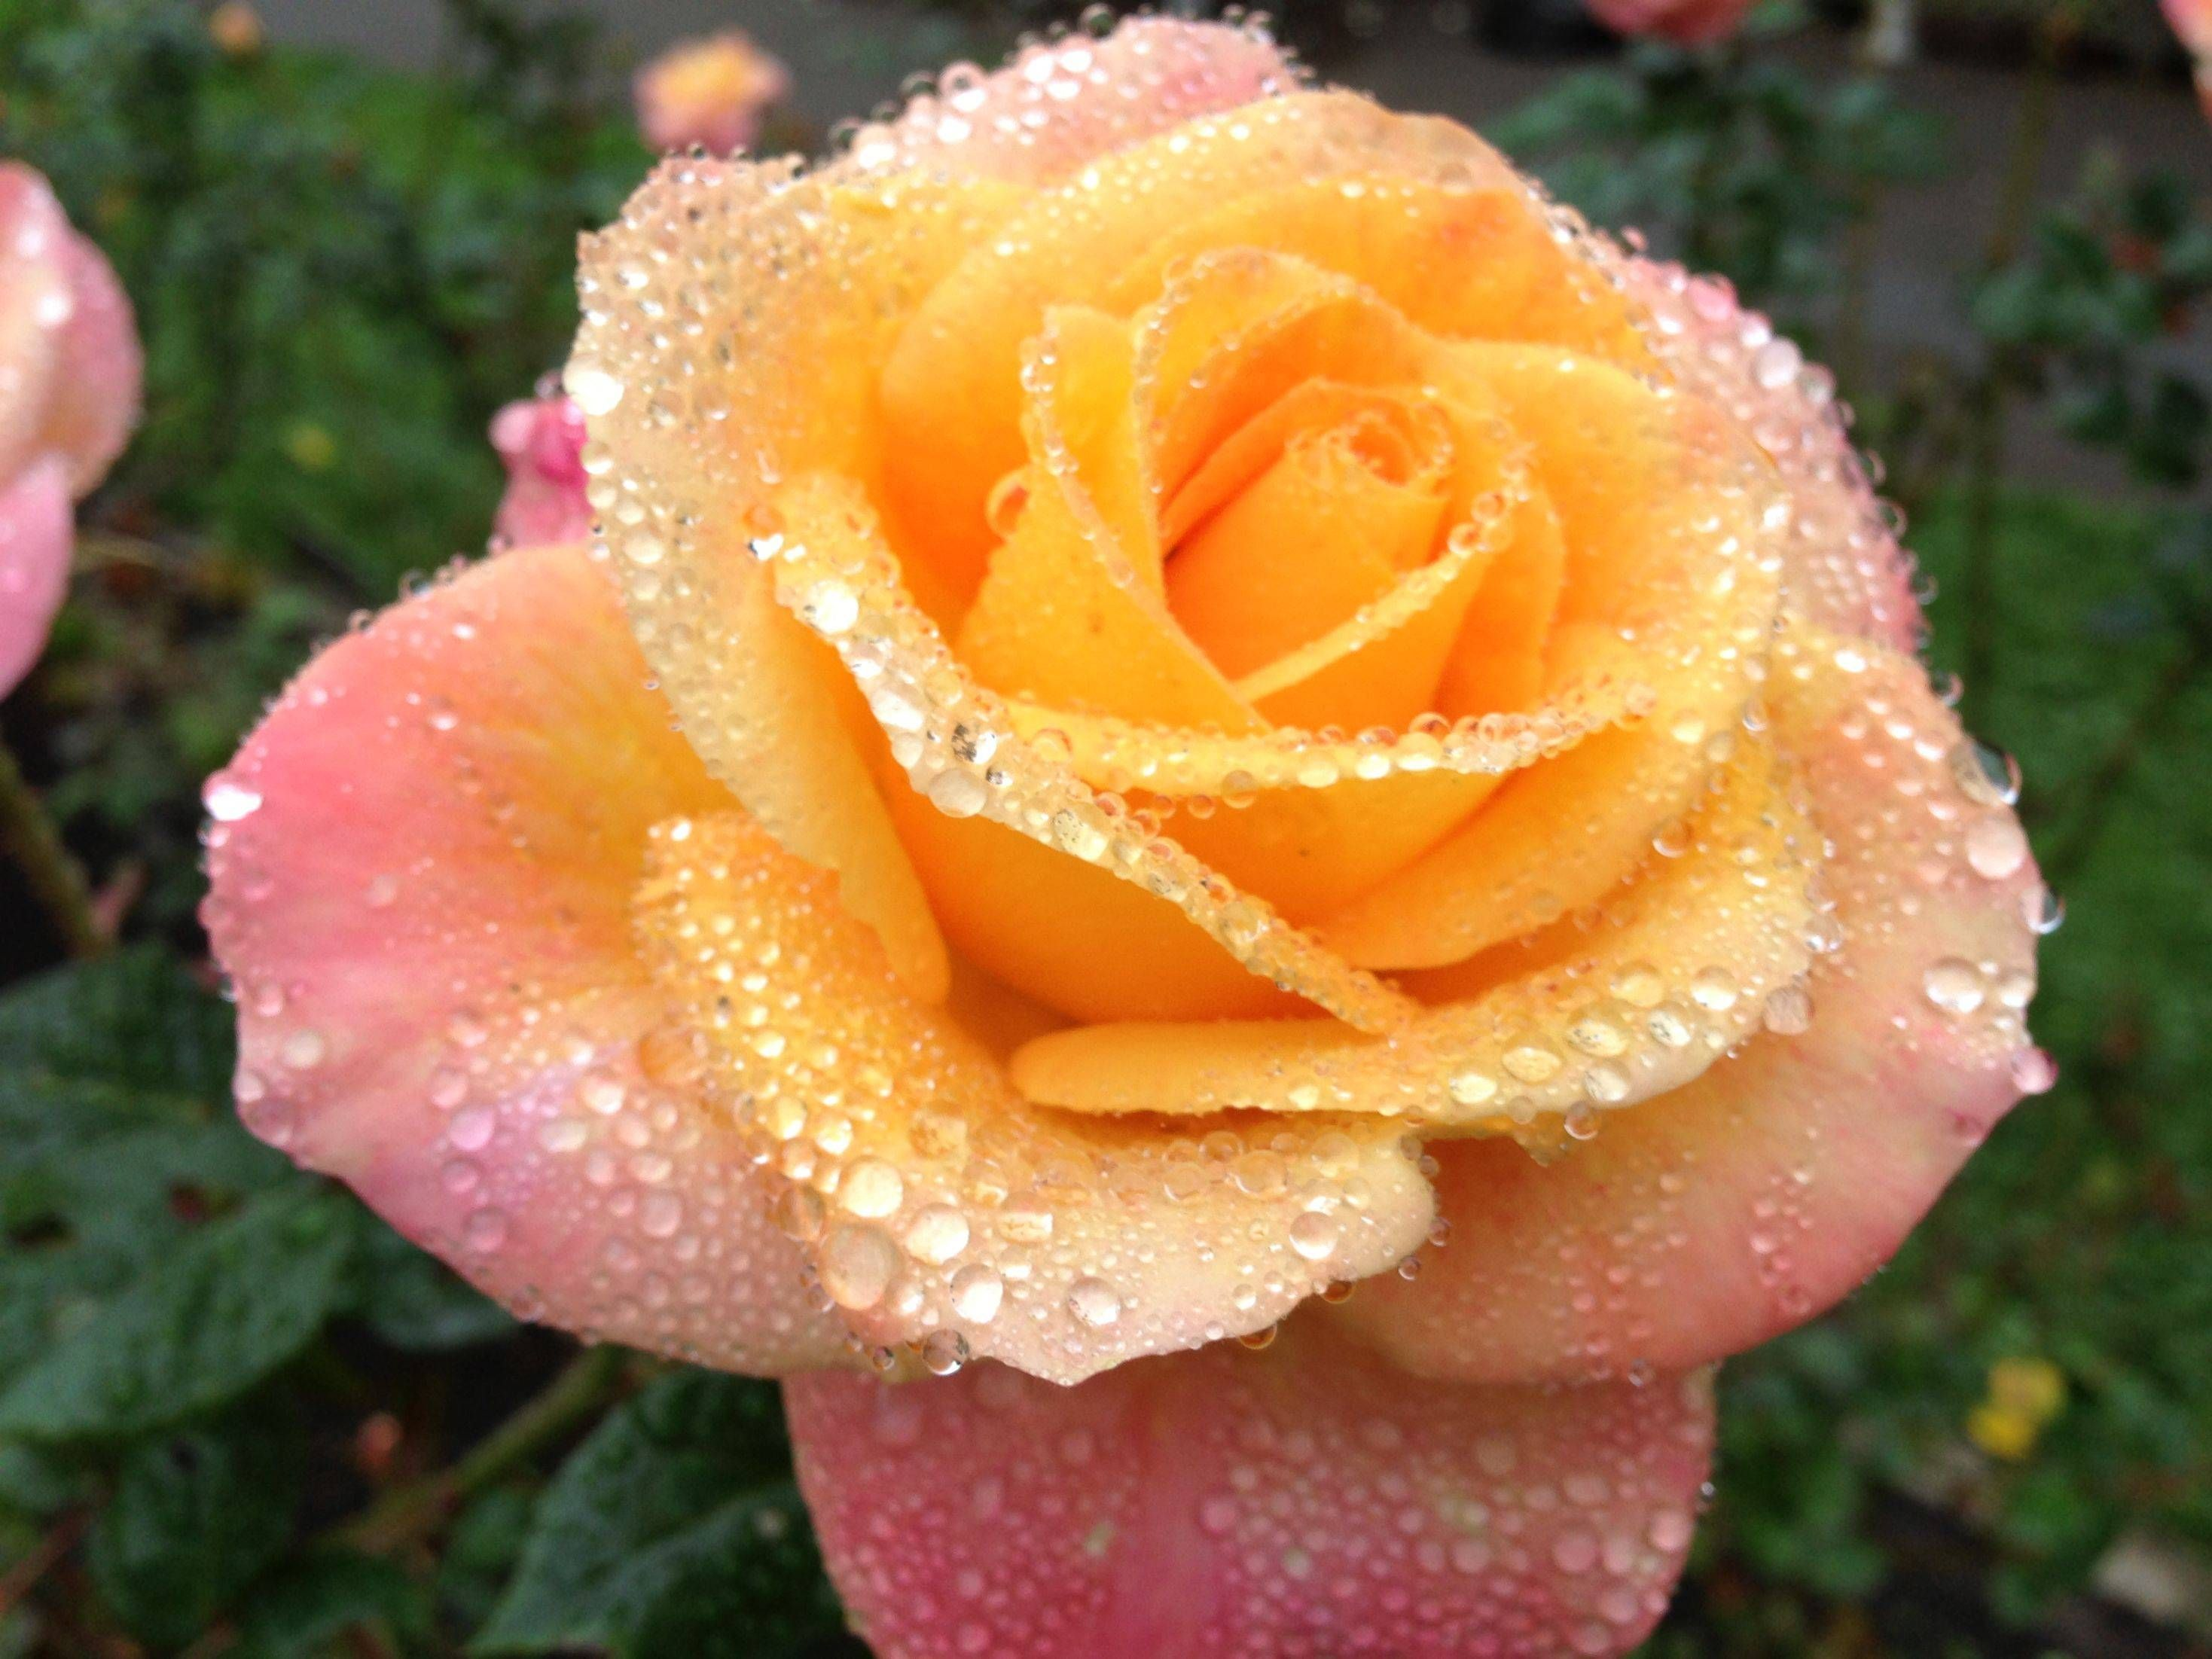 Perfectly misted rose